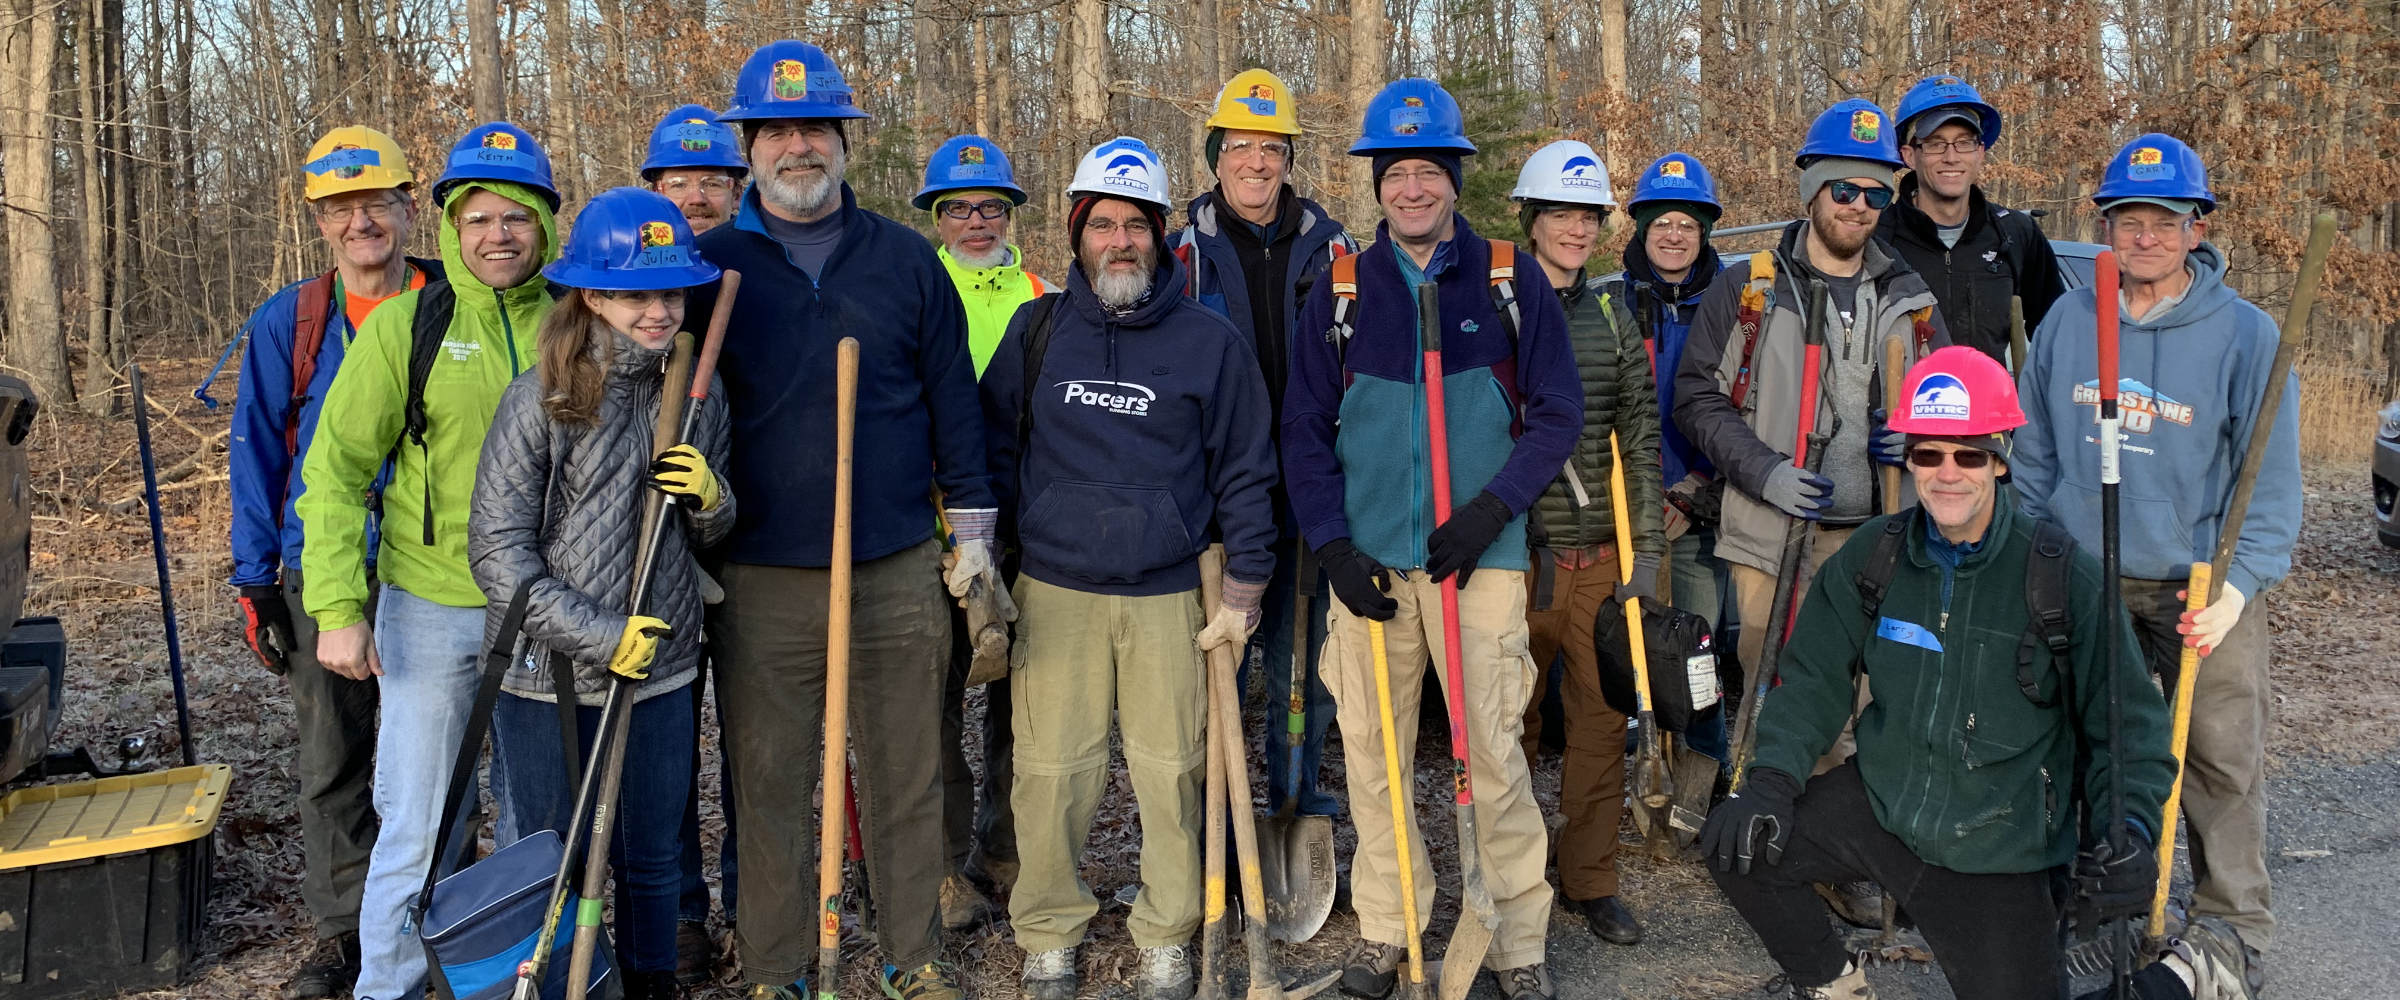 VHTRC trail workers before a January, 2019 outing on the Bull Run Occoquan Trail